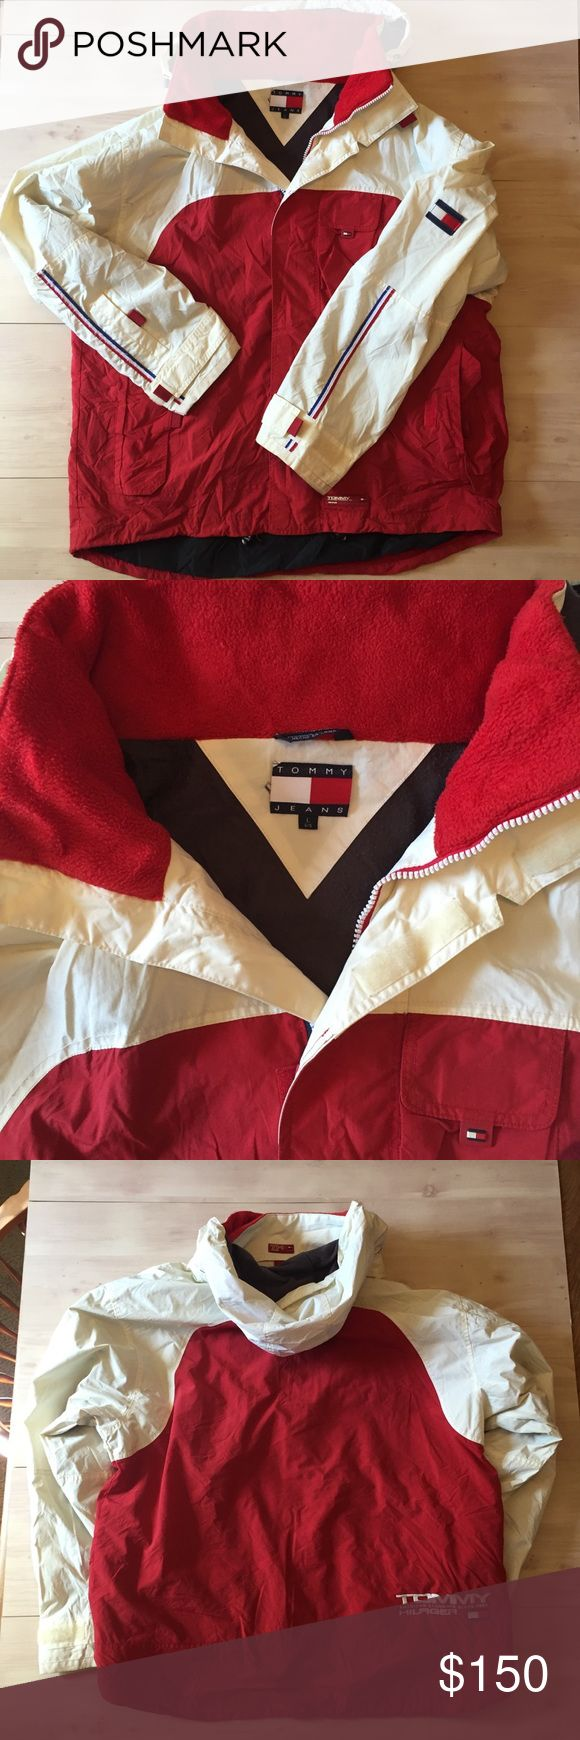 Tommy Hilfiger 90's logo jacket L 🇺🇸Rare Tommy Hilfiger logo vintage yacht sailing jacket red blue & off white EUC .lined and warm. Tommy Hilfiger Jackets & Coats